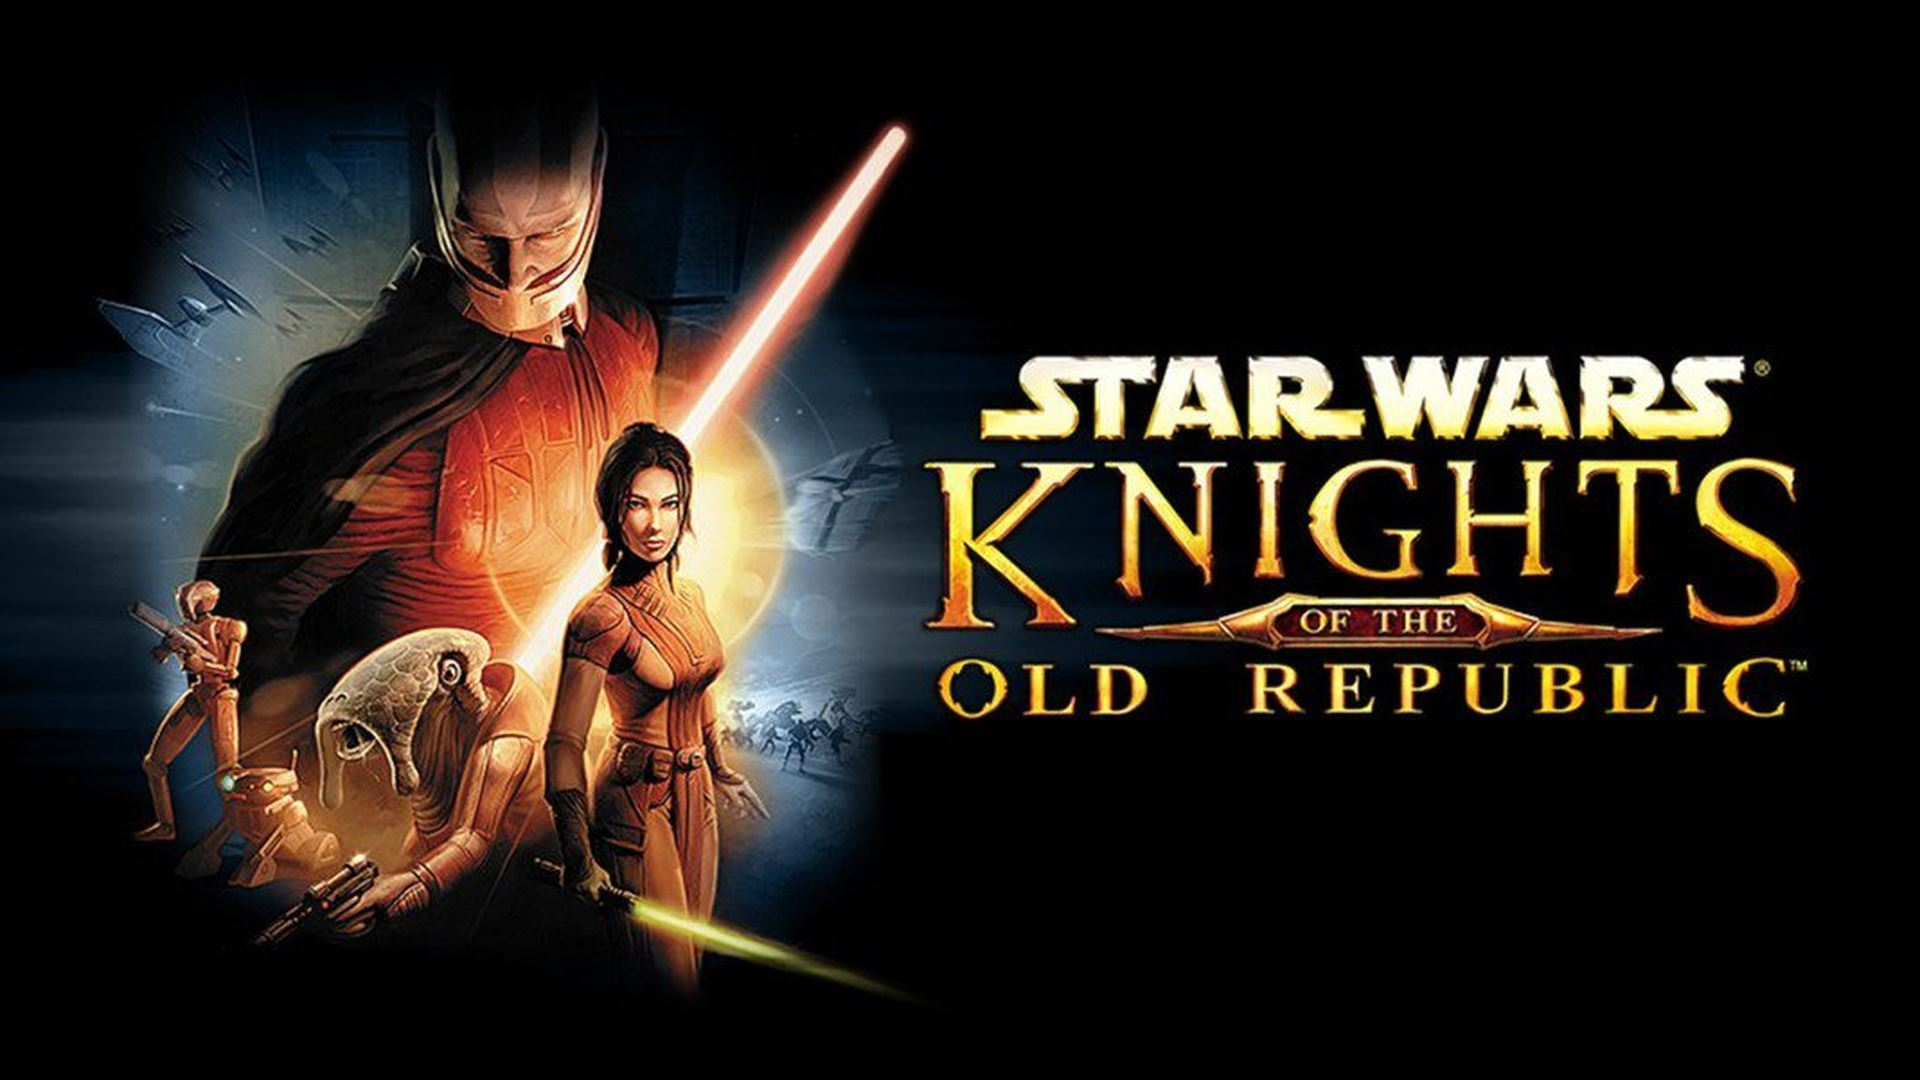 Star Wars Knights of the Old Republic: Another rumor about new game